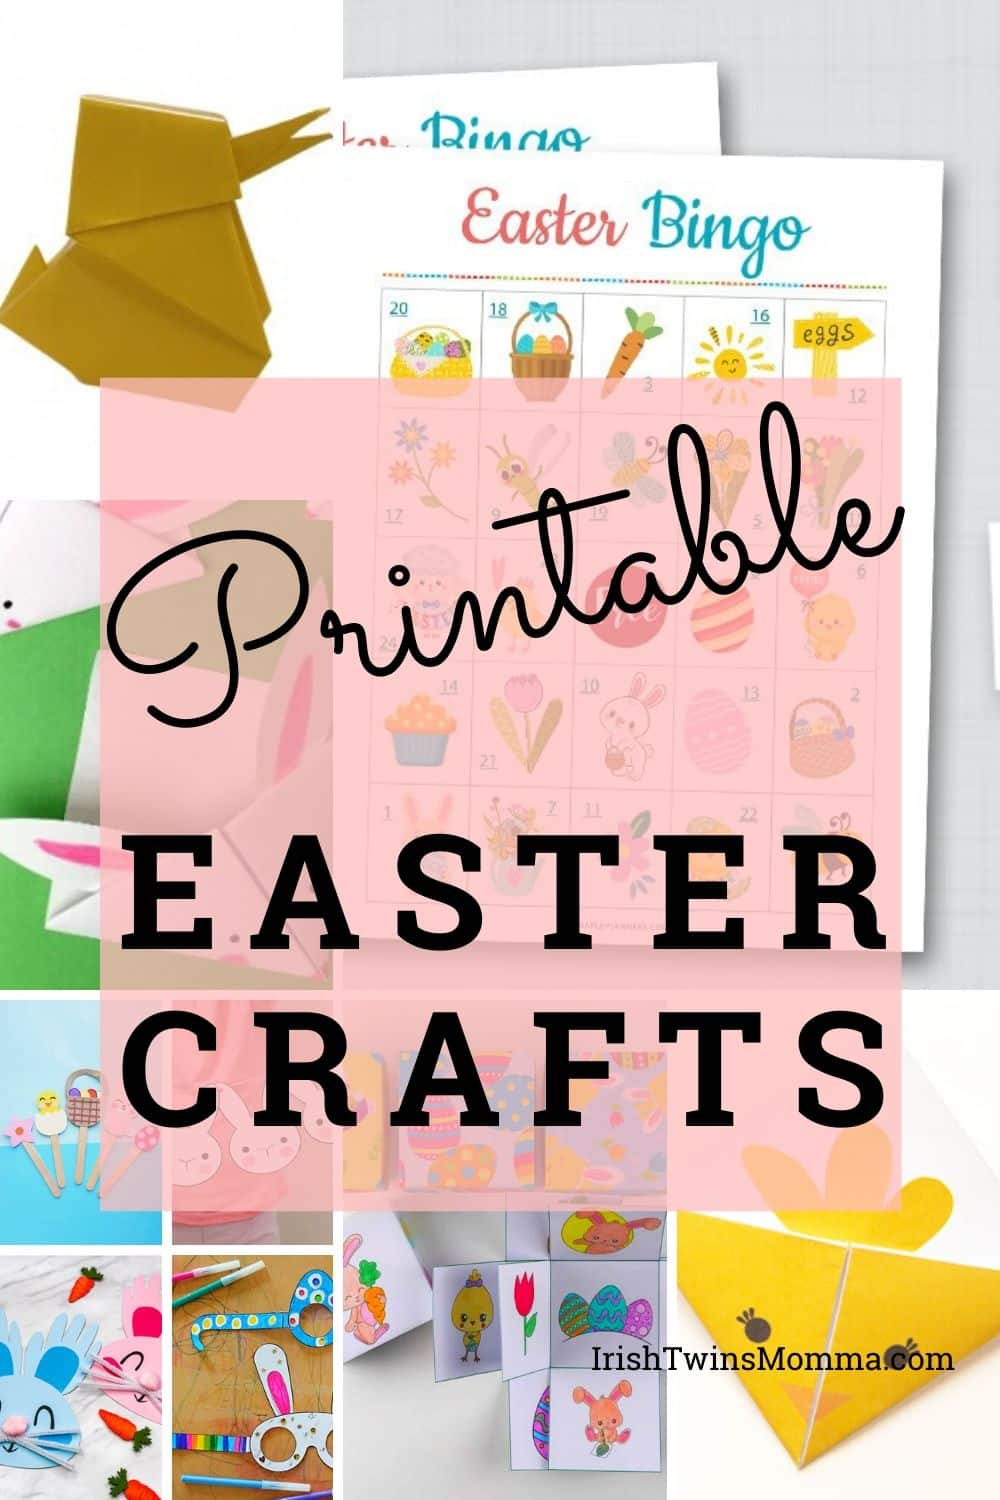 Fun Easter printables that relate back to the Easter bunny and chicks to keep your children entertained and busy during these times. via @irishtwinsmom11